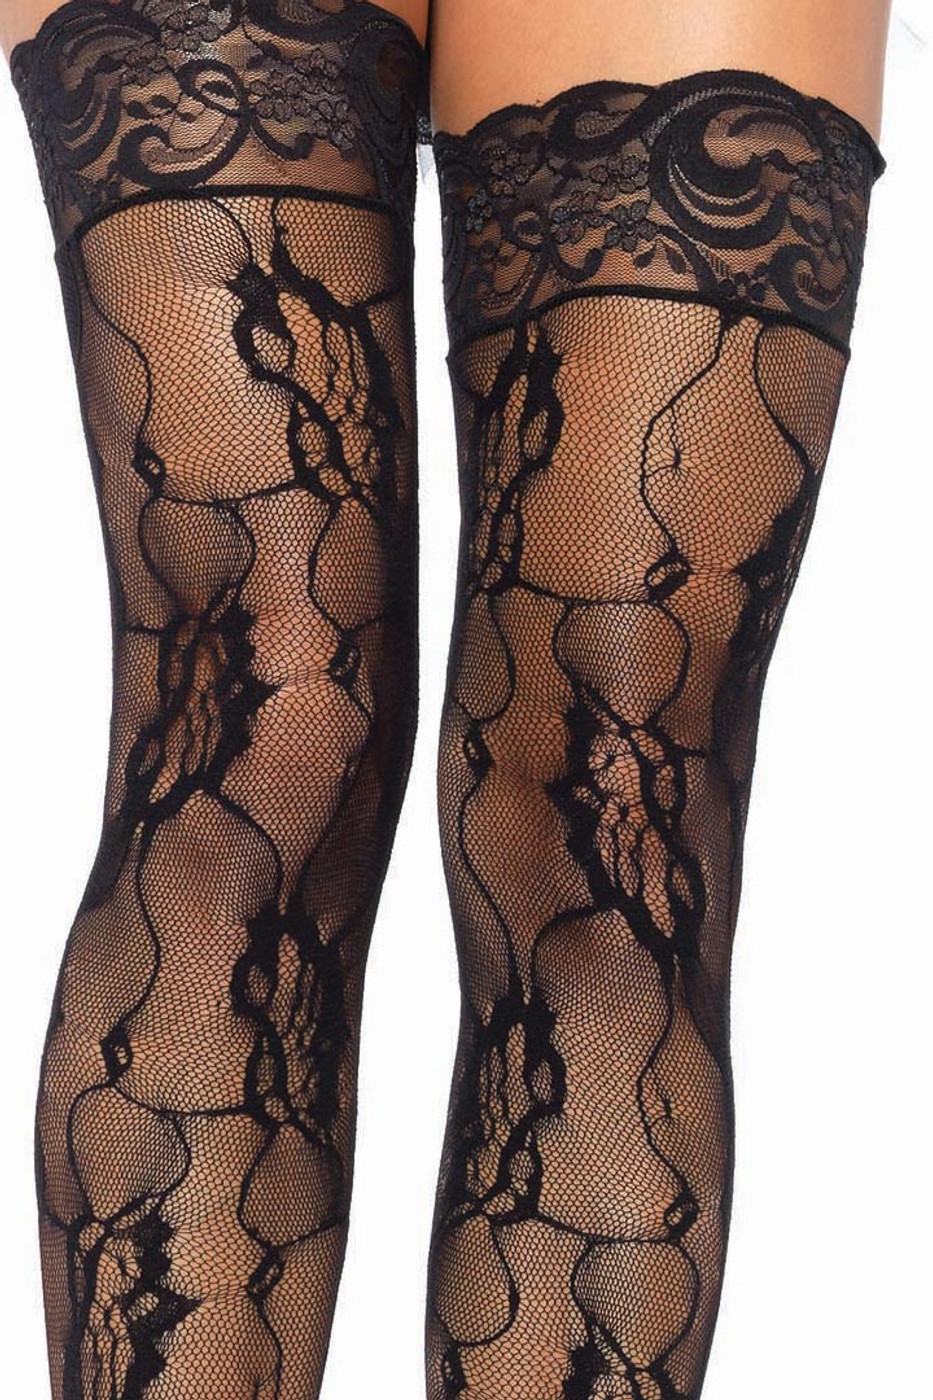 Romantic Rose Lace Thigh Highs with Lace Top White Red Black fnt